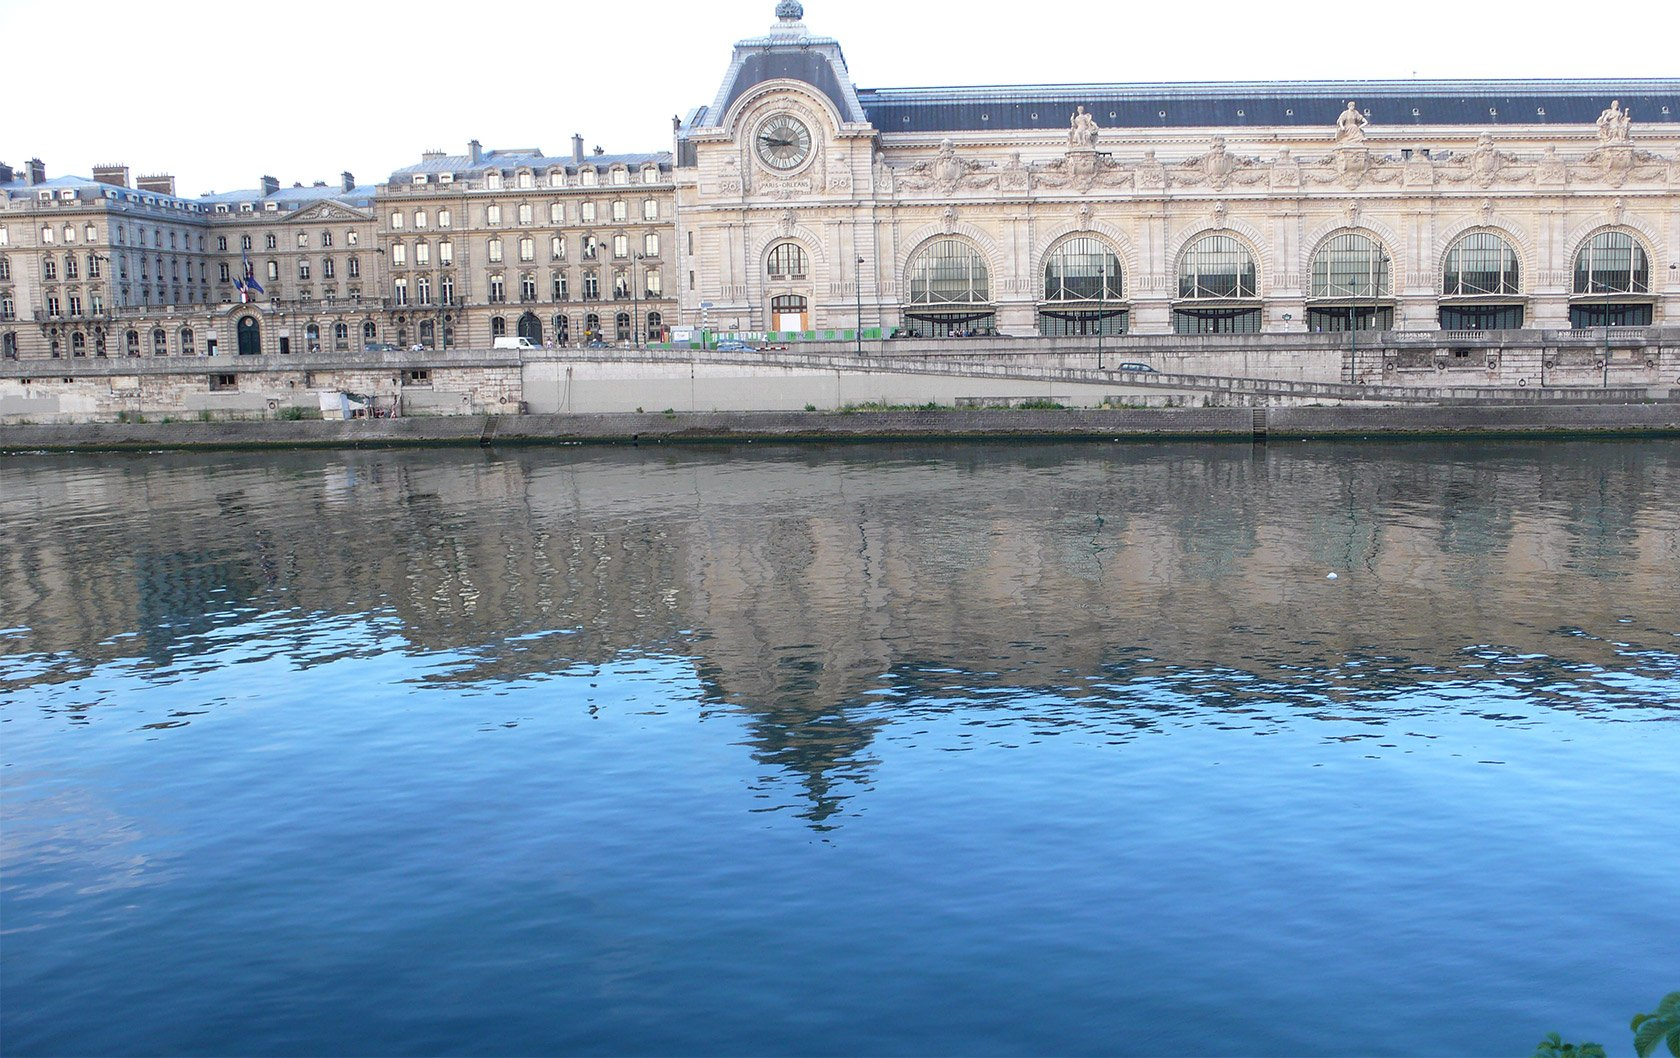 reflections-musee-d'orsay-reflected-in-the-seine